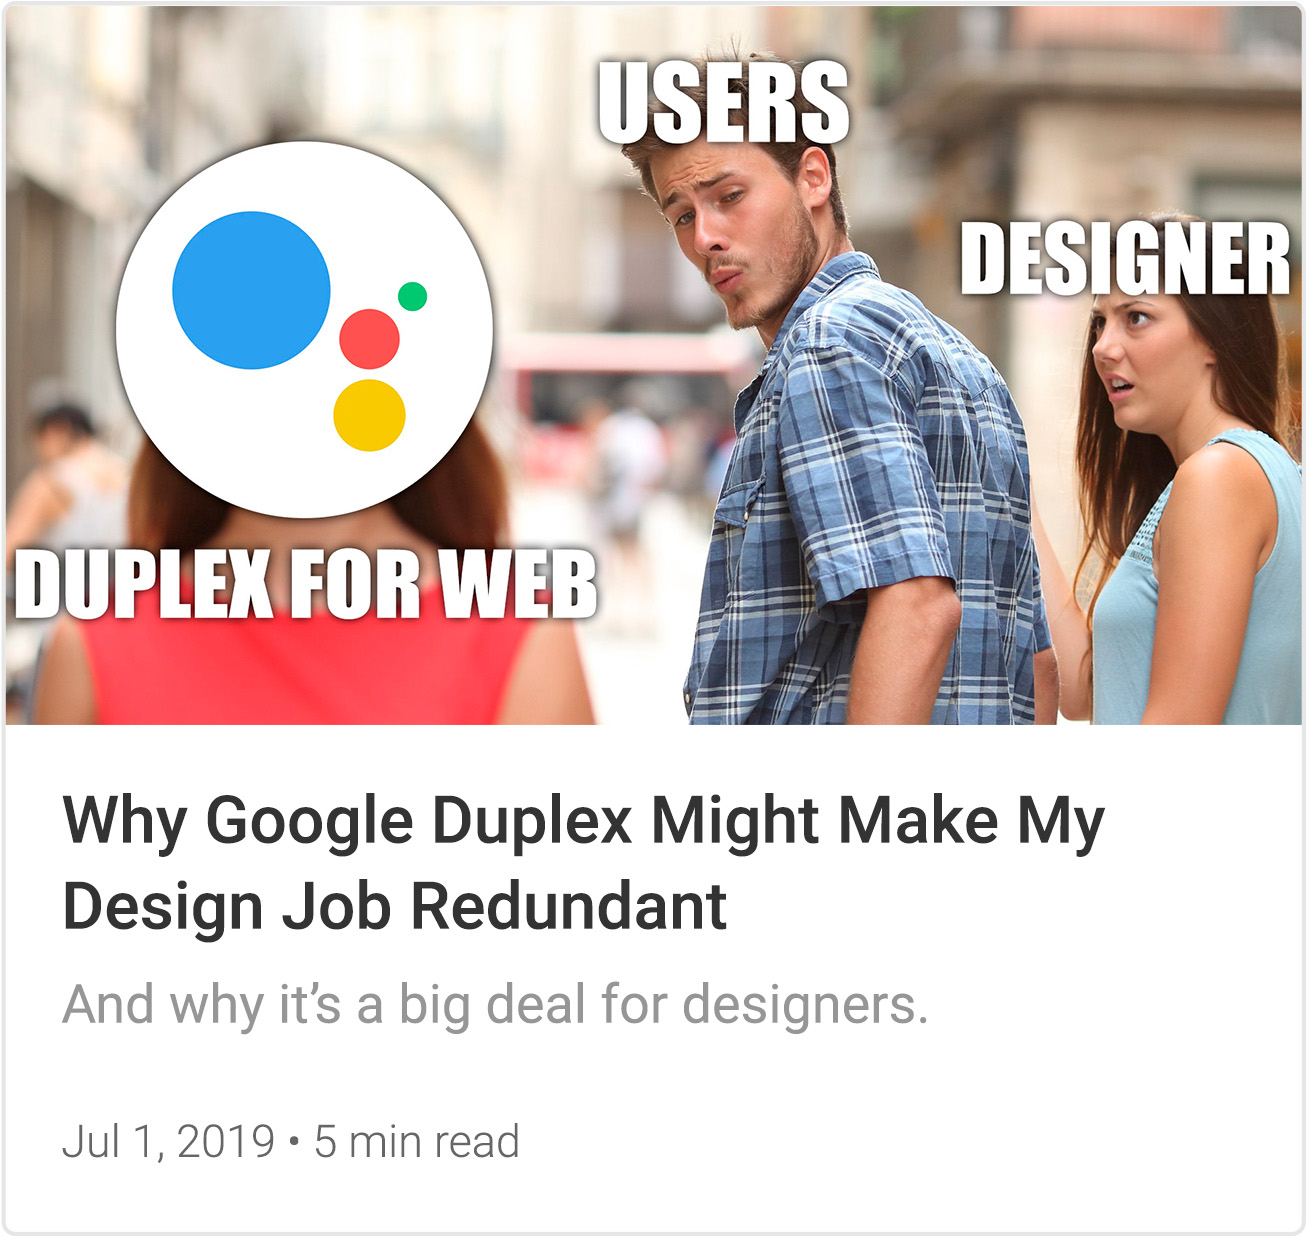 read-google-duplex-design-redundant.jpg.